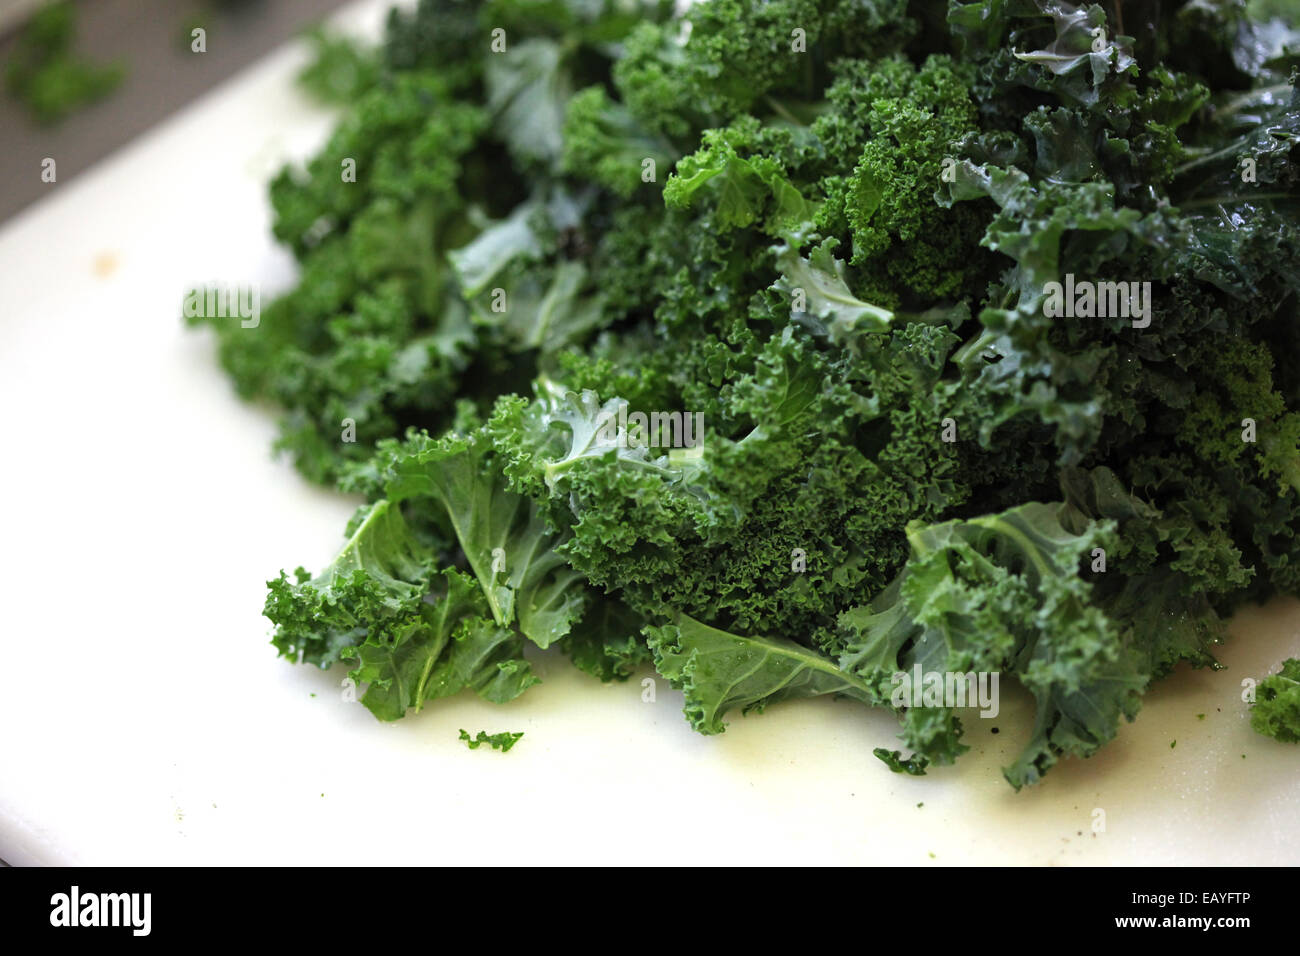 Close-up of prepared curly kale on a cutting board for a meal - Stock Image